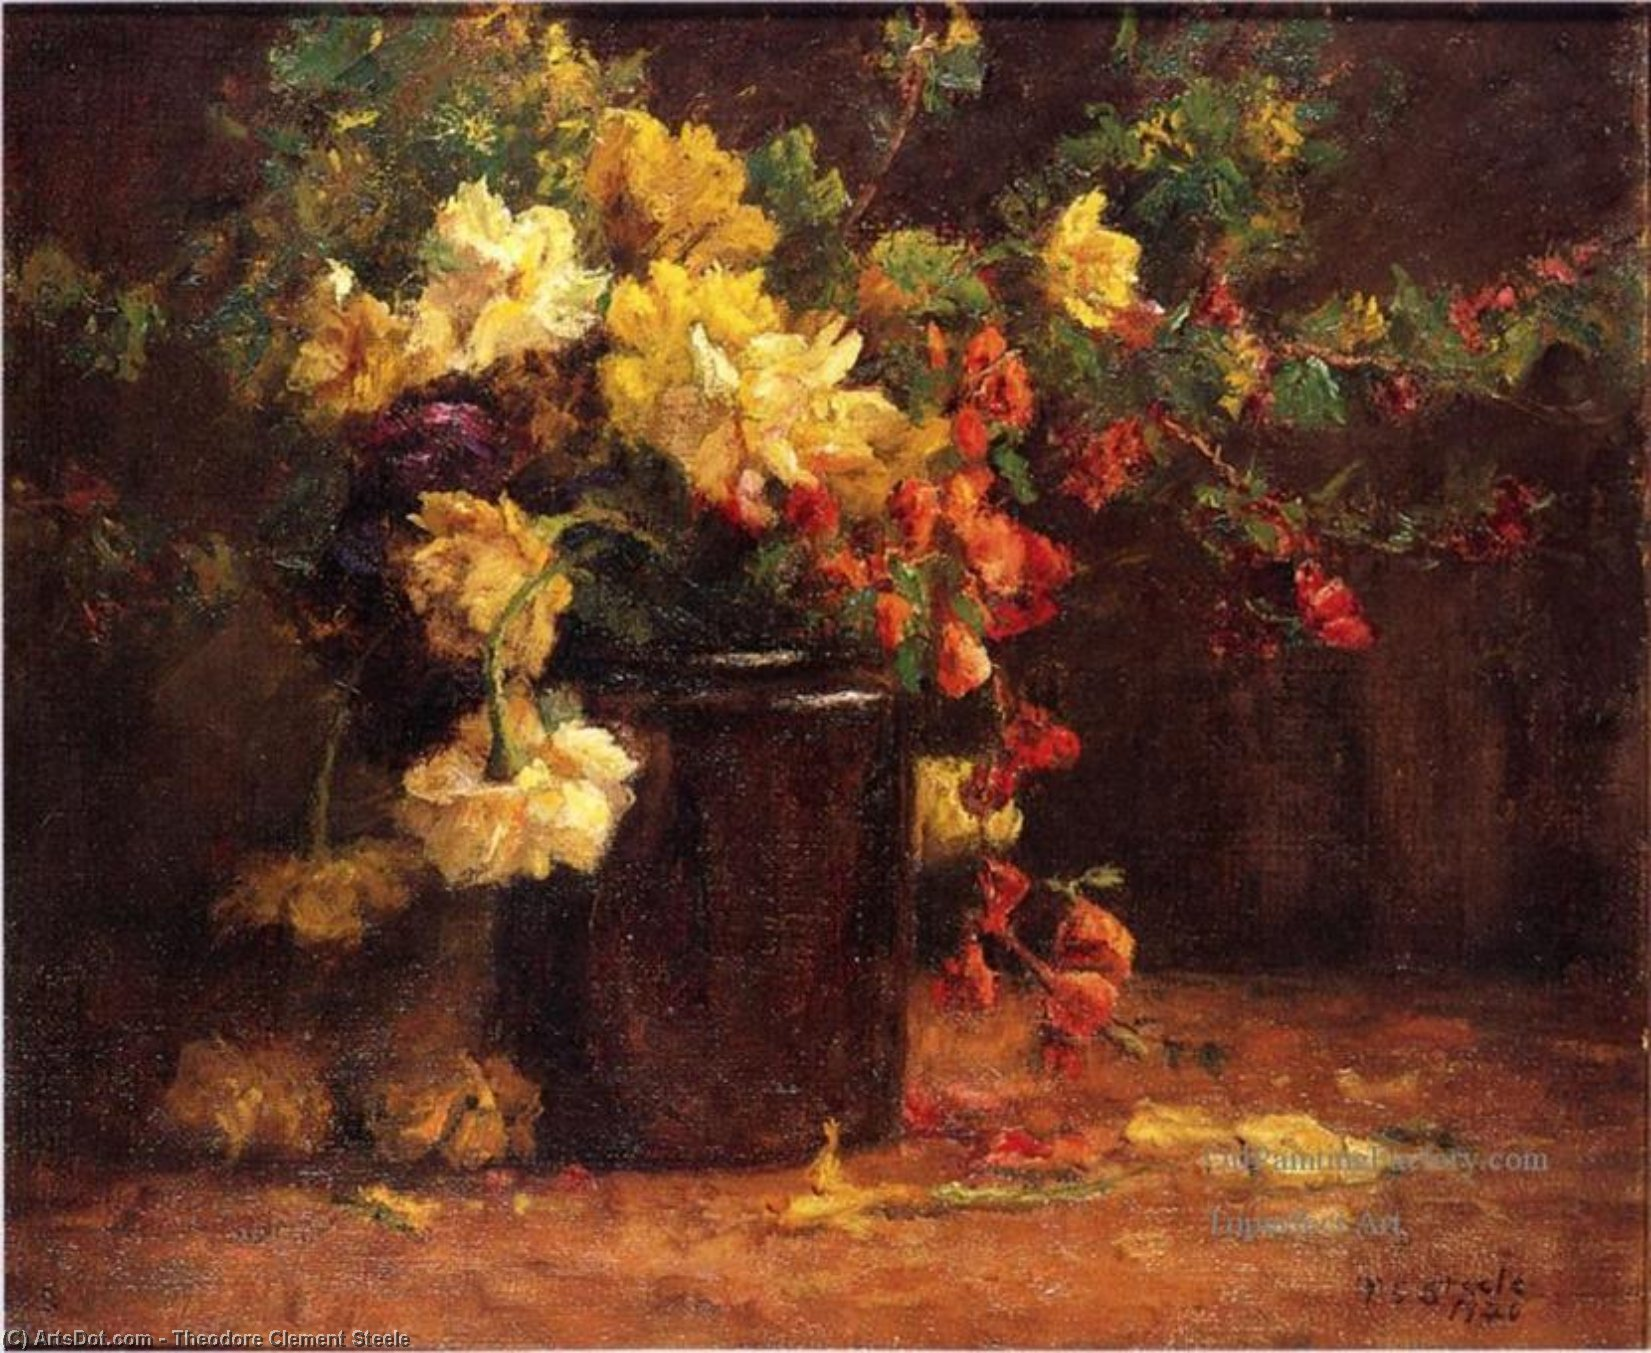 Vase of Flowers by Theodore Clement Steele (1847-1926, United States)